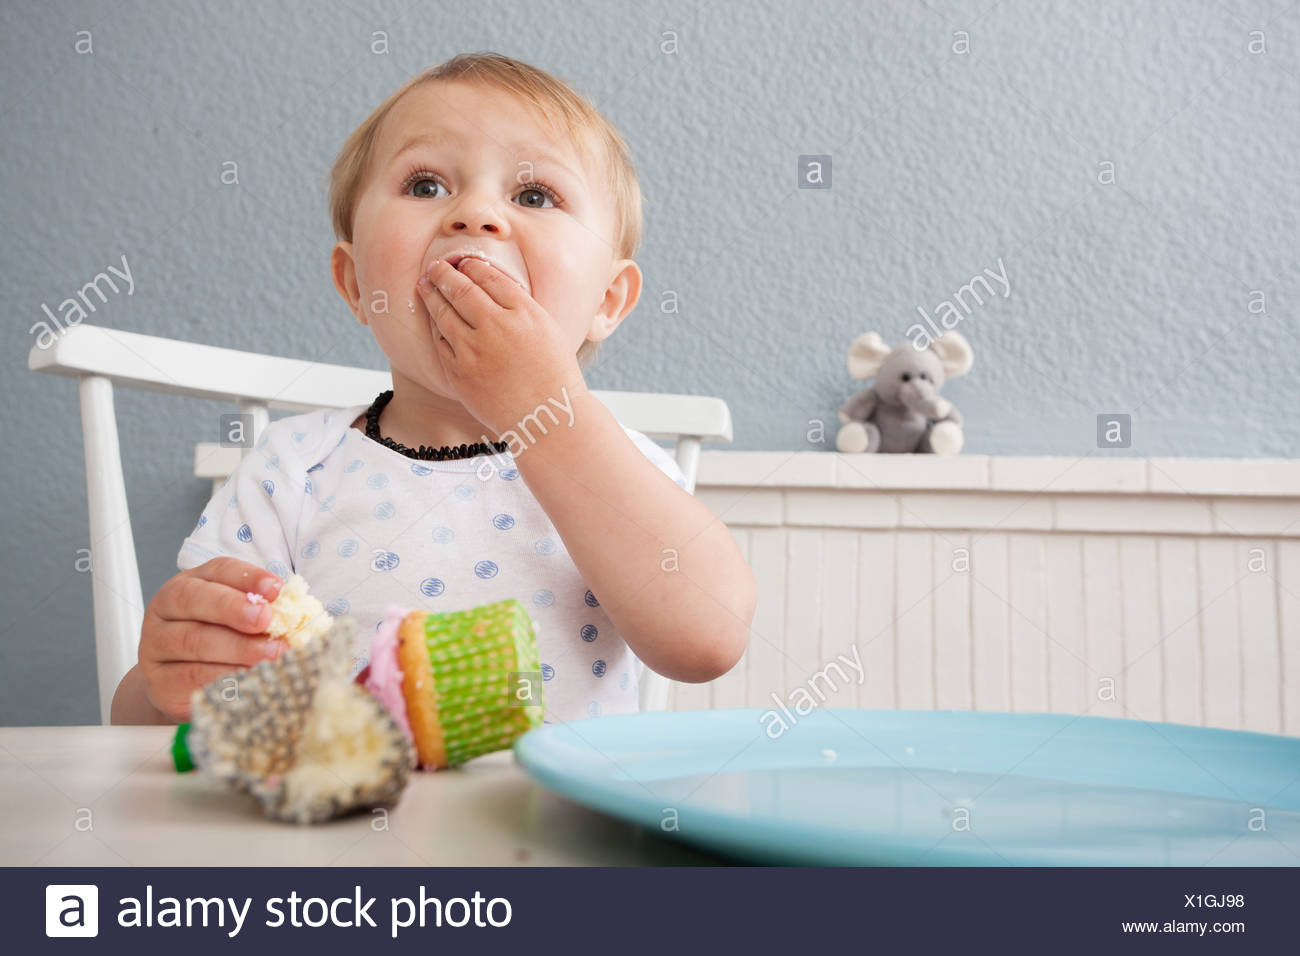 Baby boy eating cupcake - Stock Image